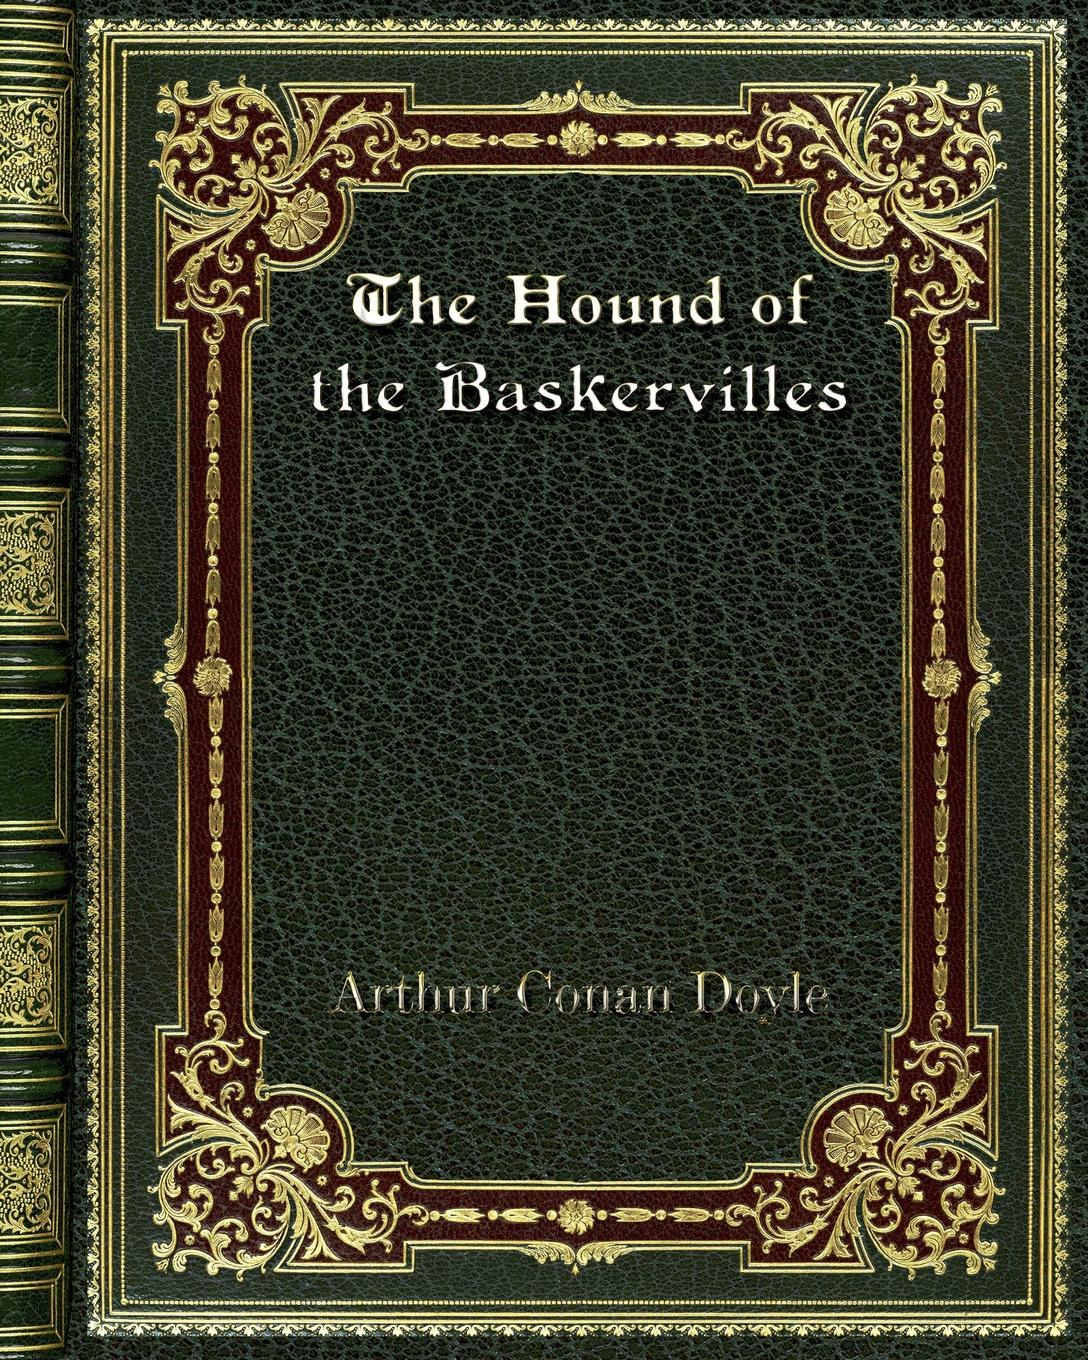 купить Arthur Conan Doyle The Hound of the Baskervilles в интернет-магазине